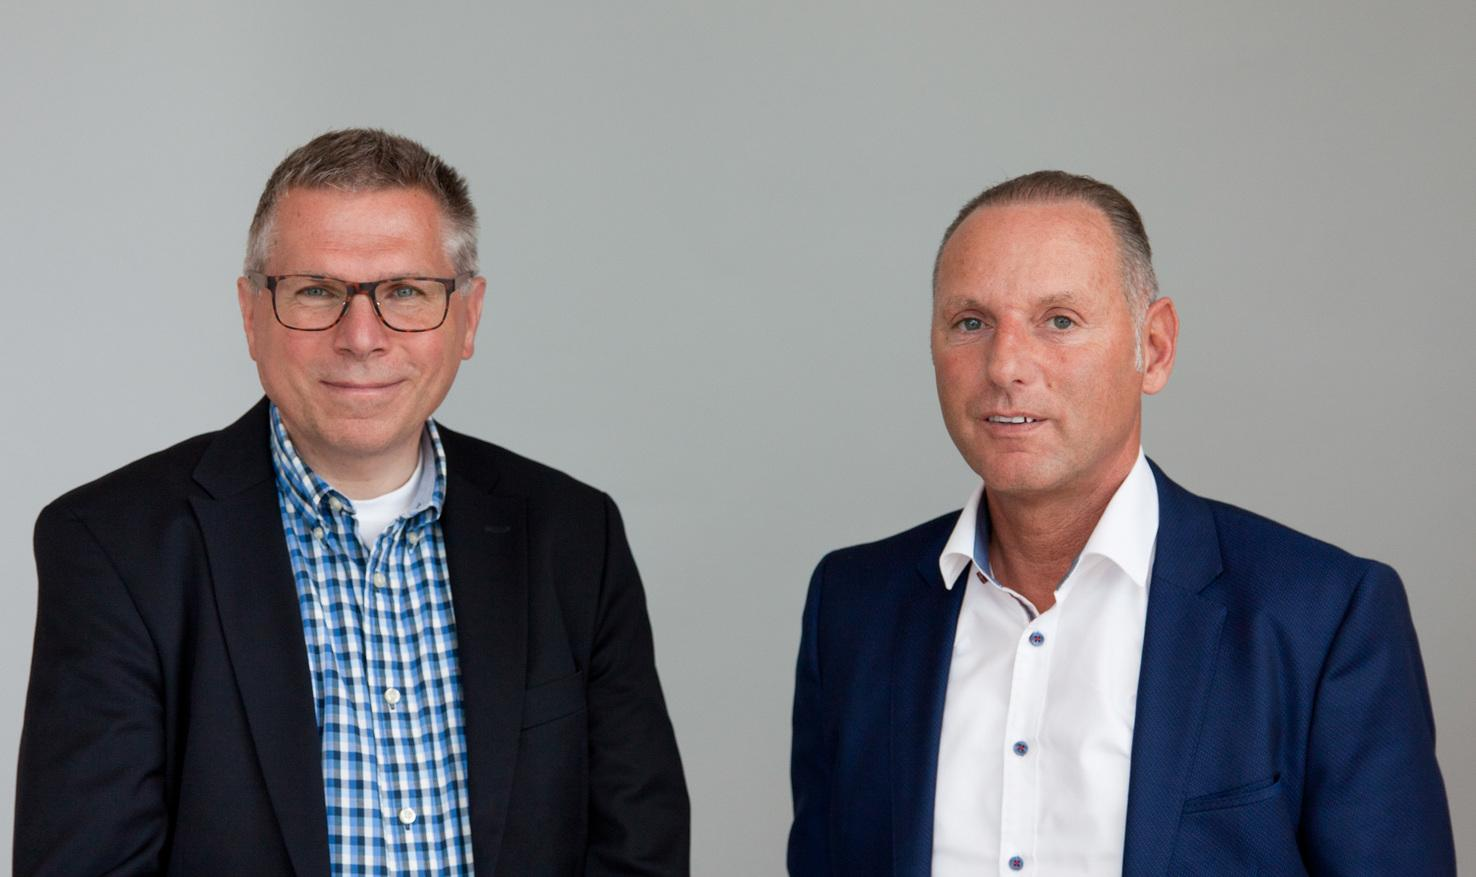 In neuen Rollen bei AP&T: Per Josefsson, Director Business Development und Gerald Schultz, Chief Sales Officer.